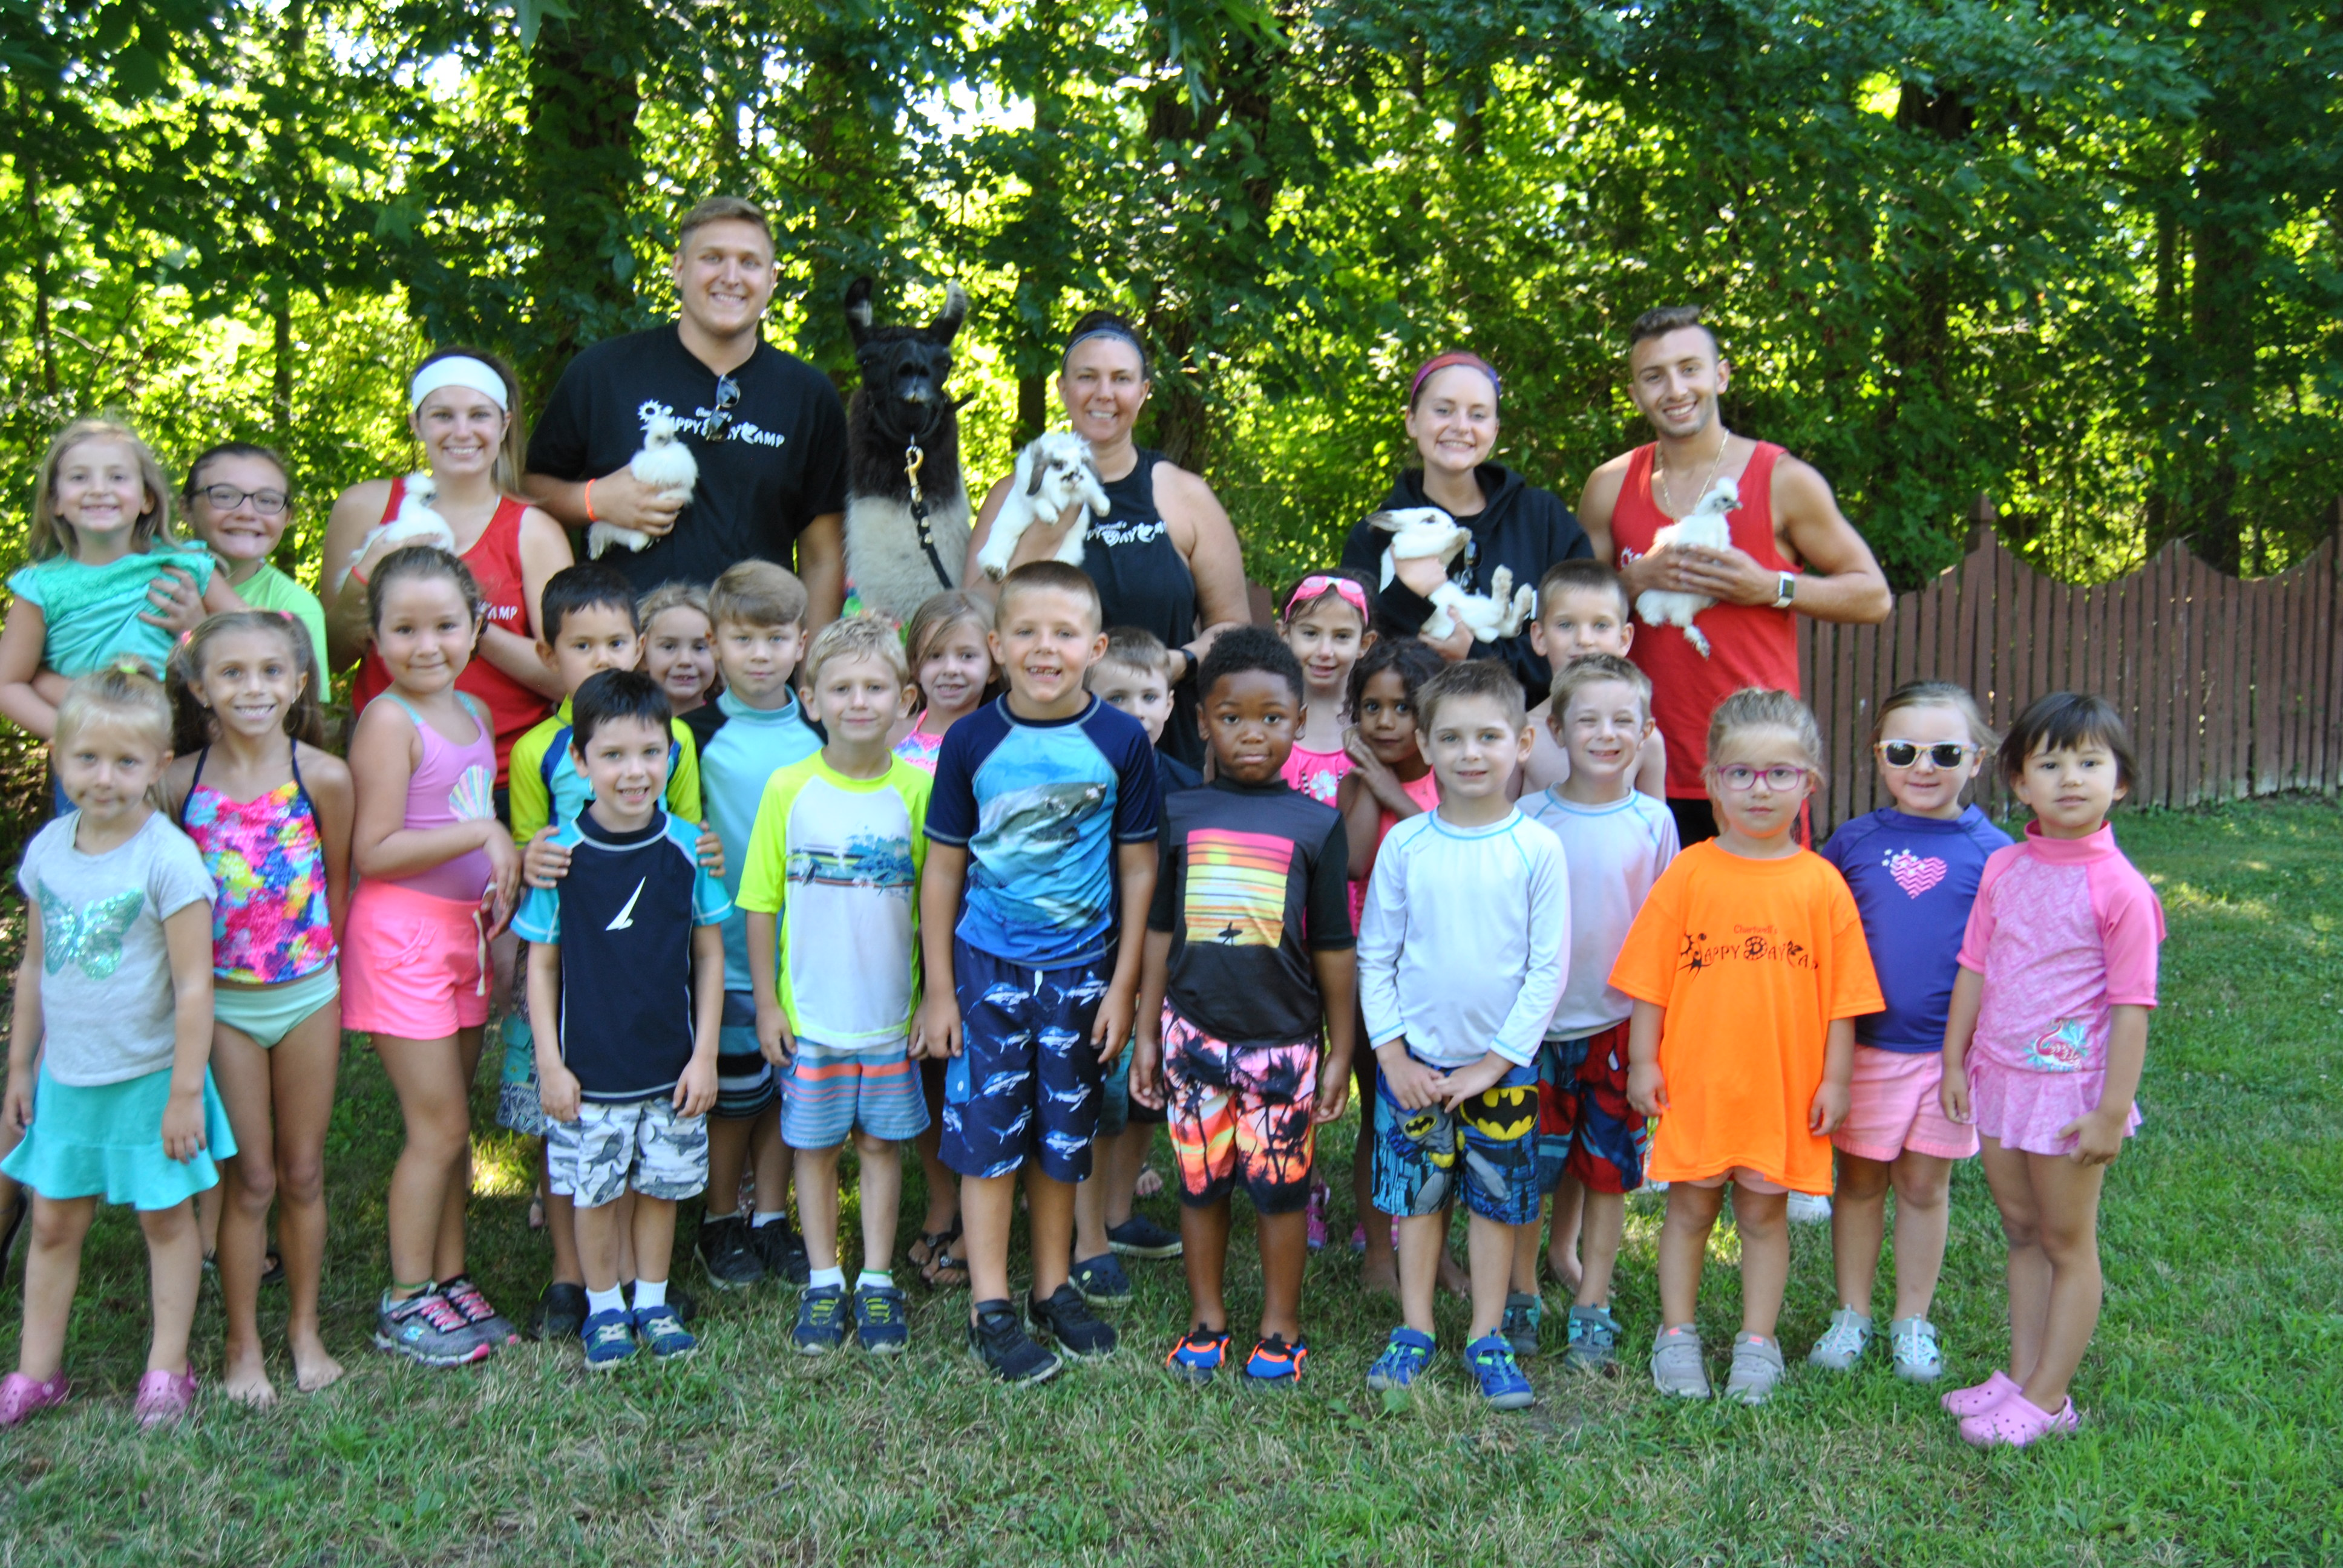 Chartwell's Happy Day Camp Marlton image 53